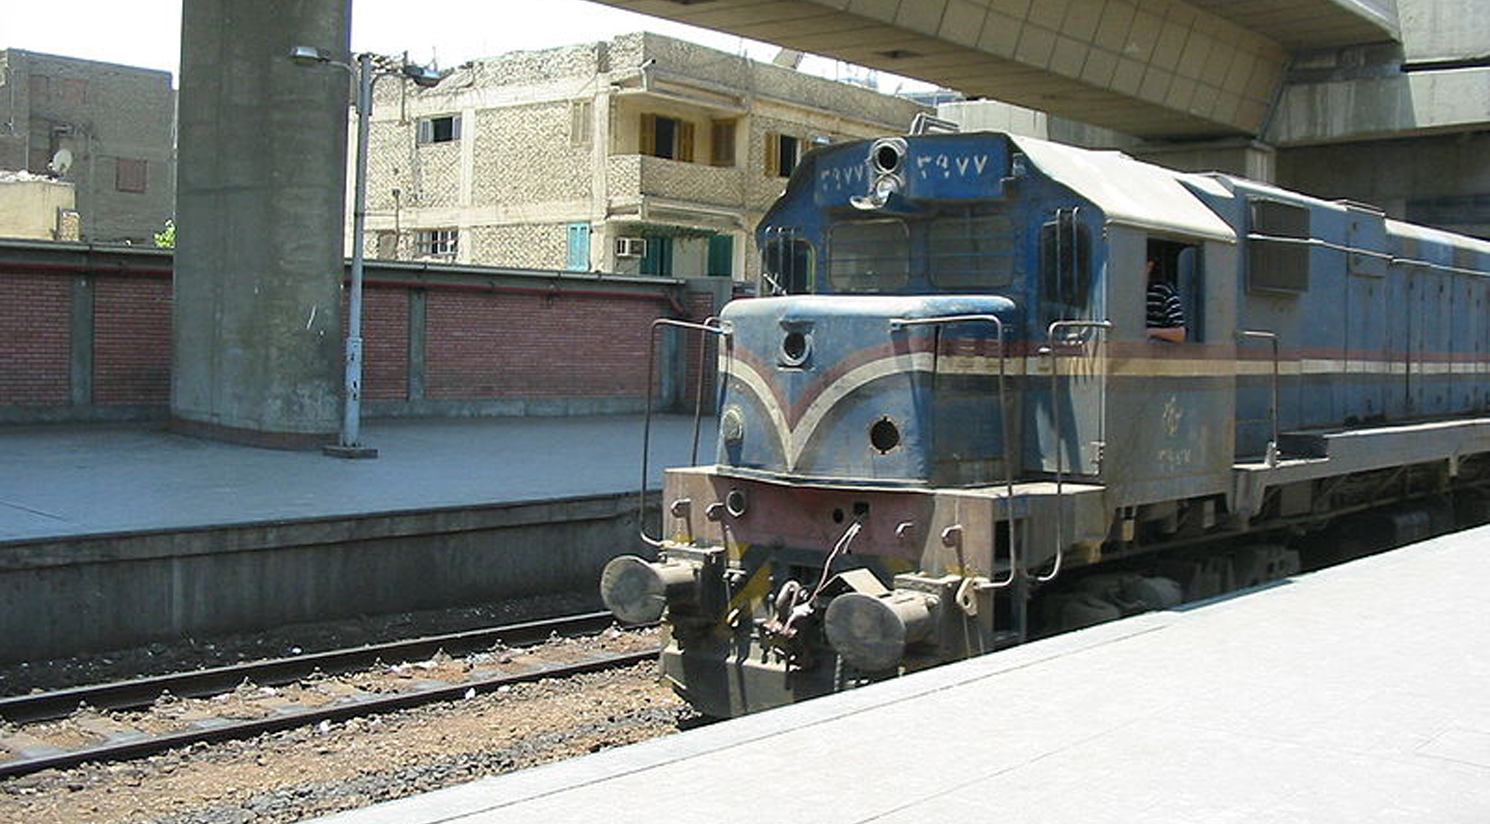 Prestation de services à Egyptian National Railway (ENR) en entretien de locomotives